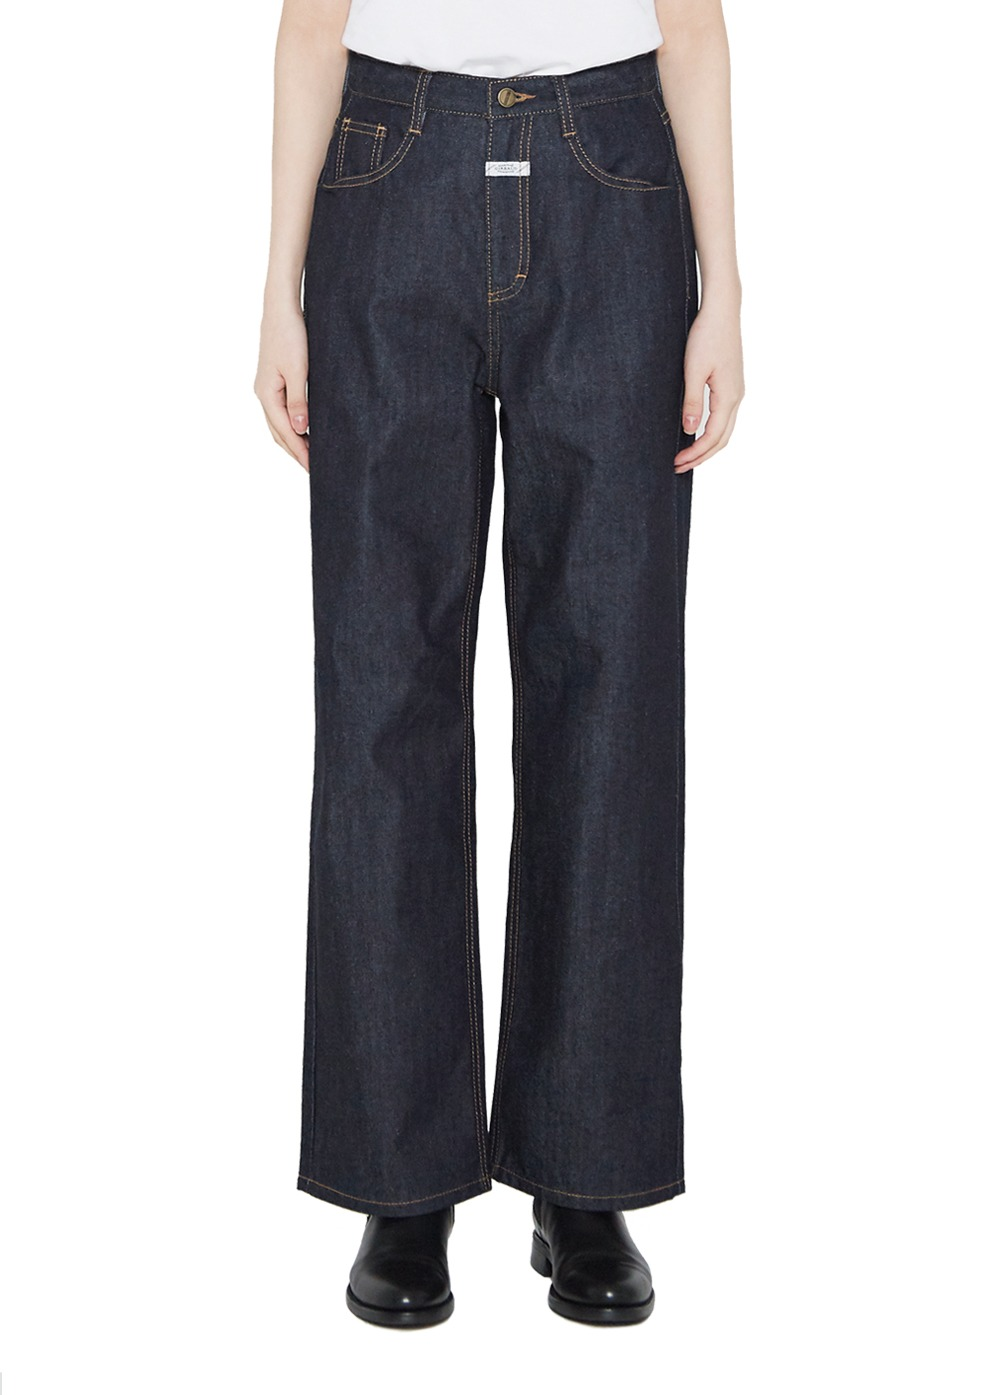 MARITHE W WIDE JEANS rigid blue